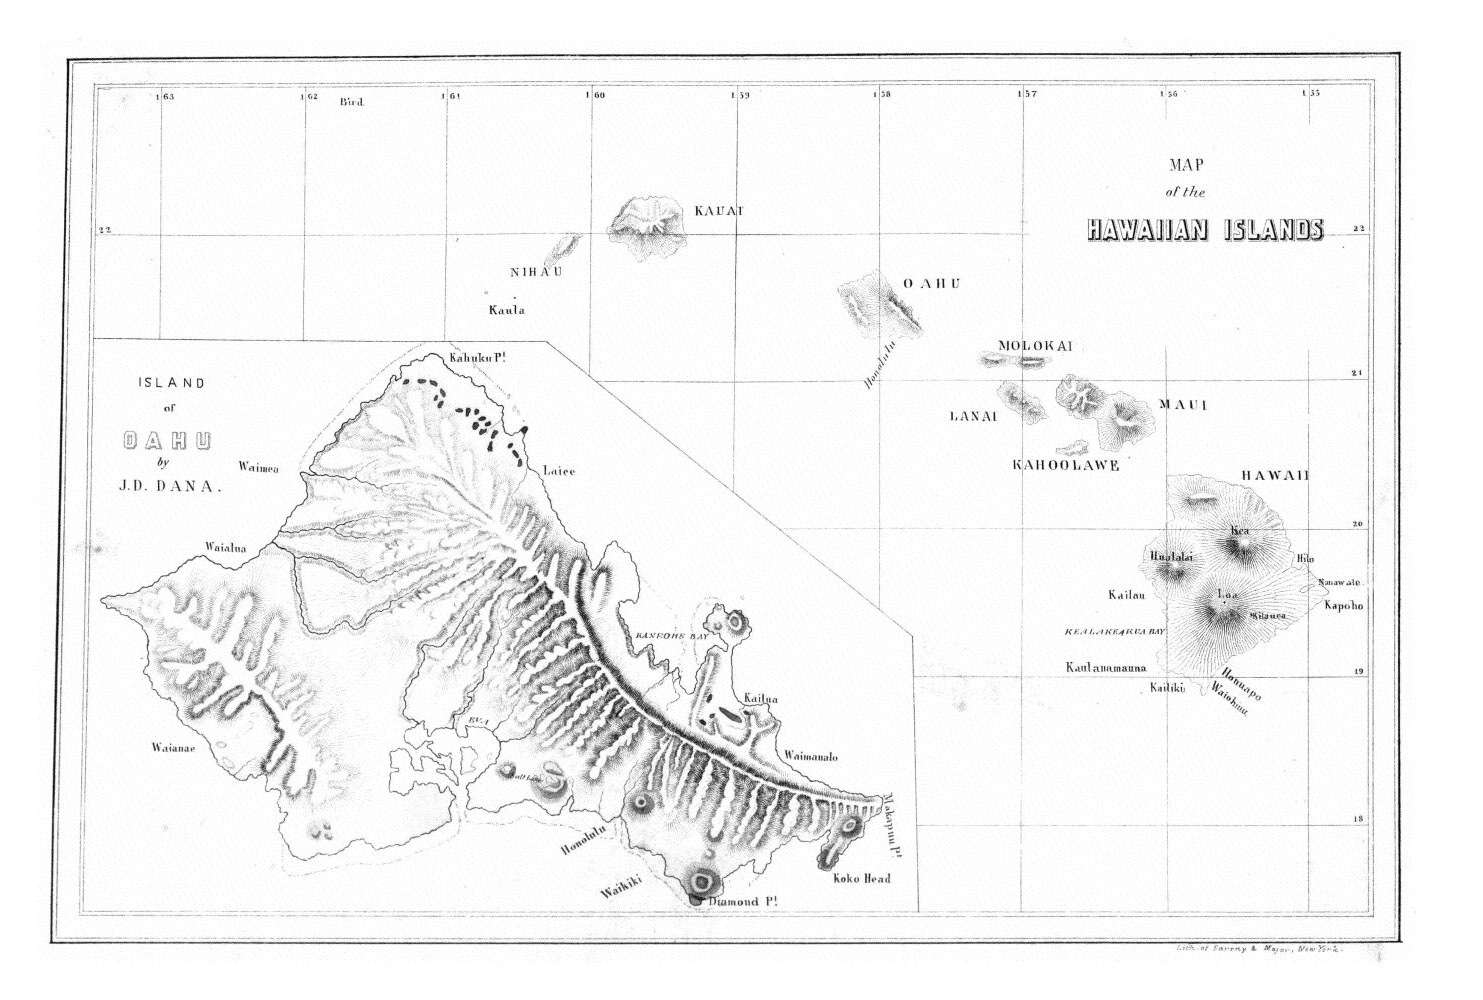 Map of the Hawaiian Islands,  Image number:Sil19-14-163